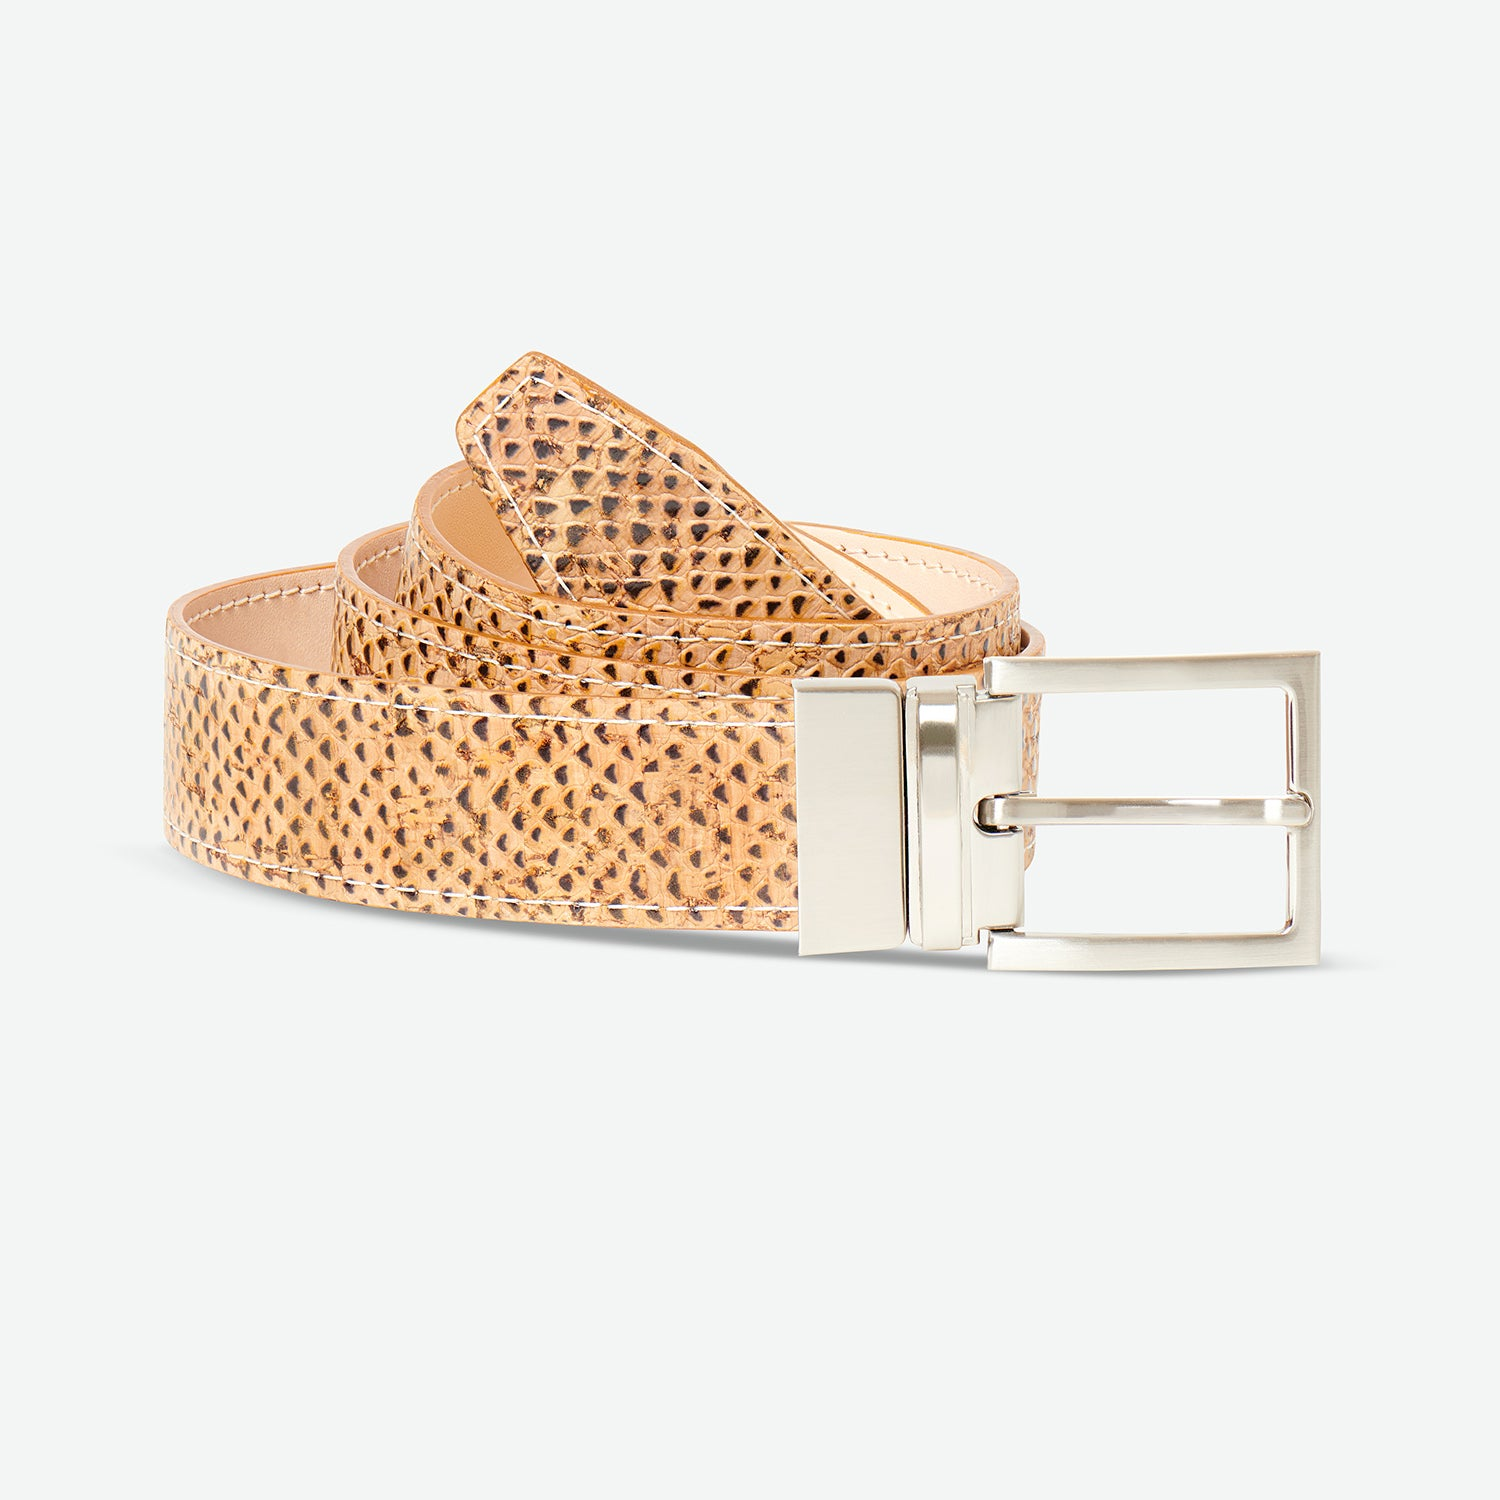 Cork fabric belt